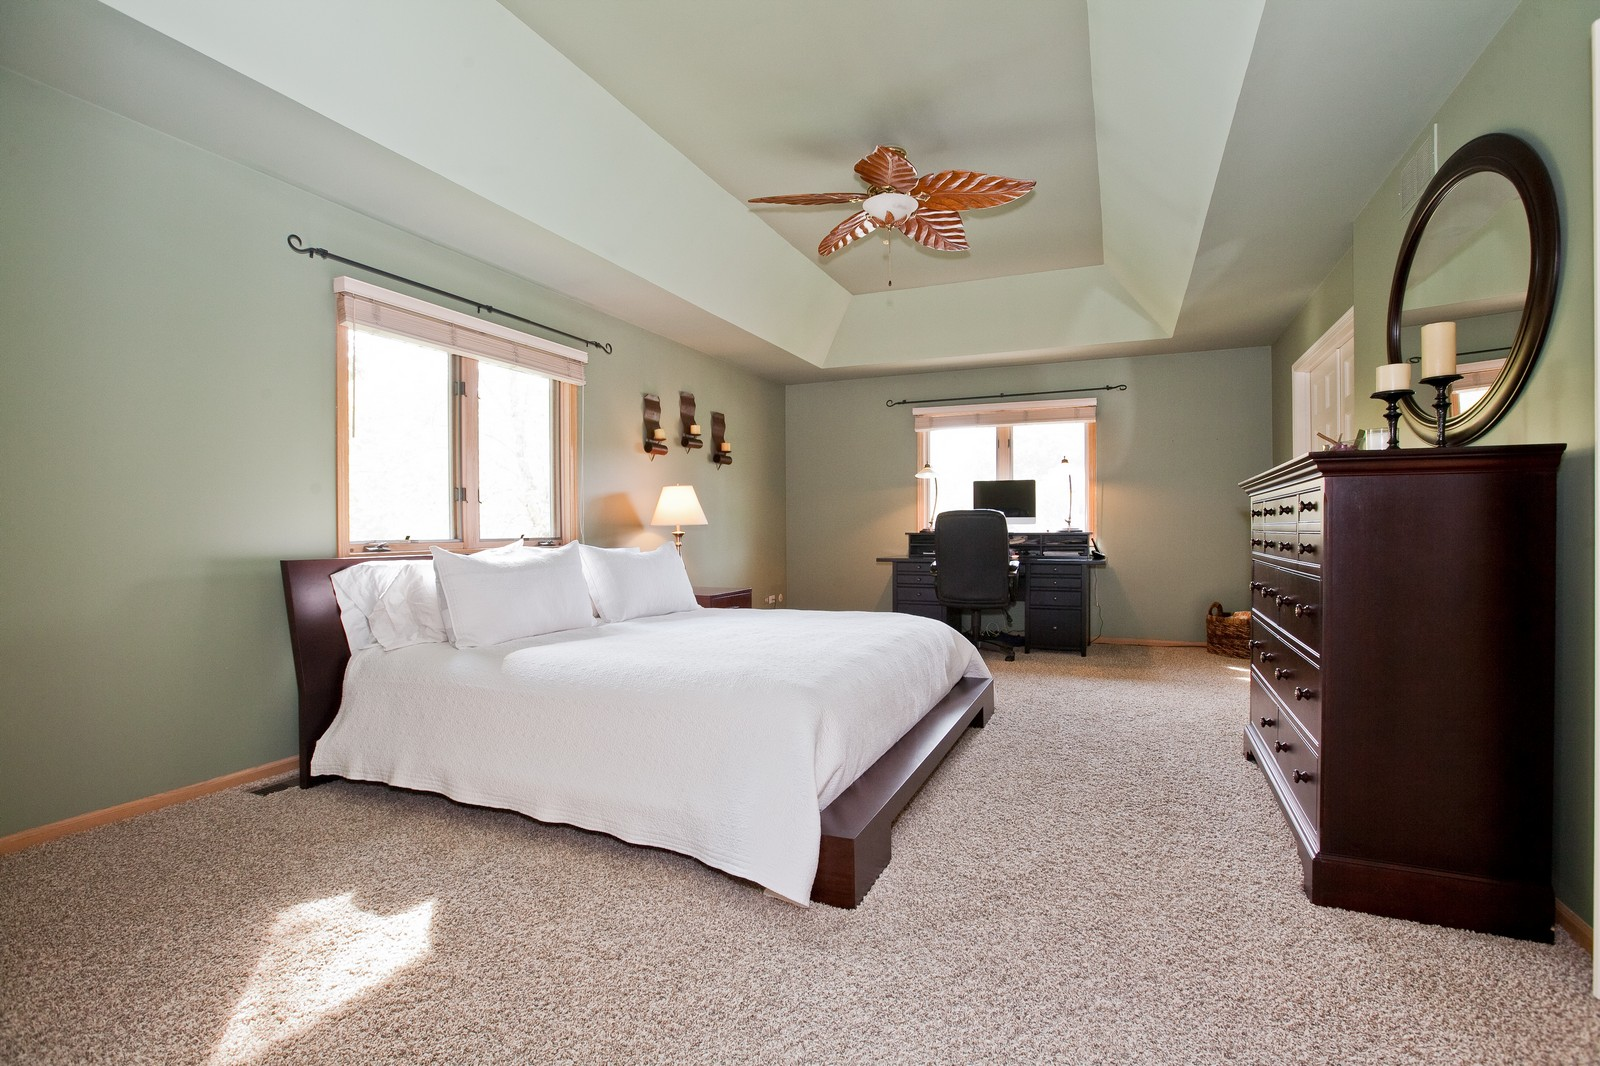 Real Estate Photography - 1031 W. 119th St, Lemont, IL, 60439 - Master Bedroom